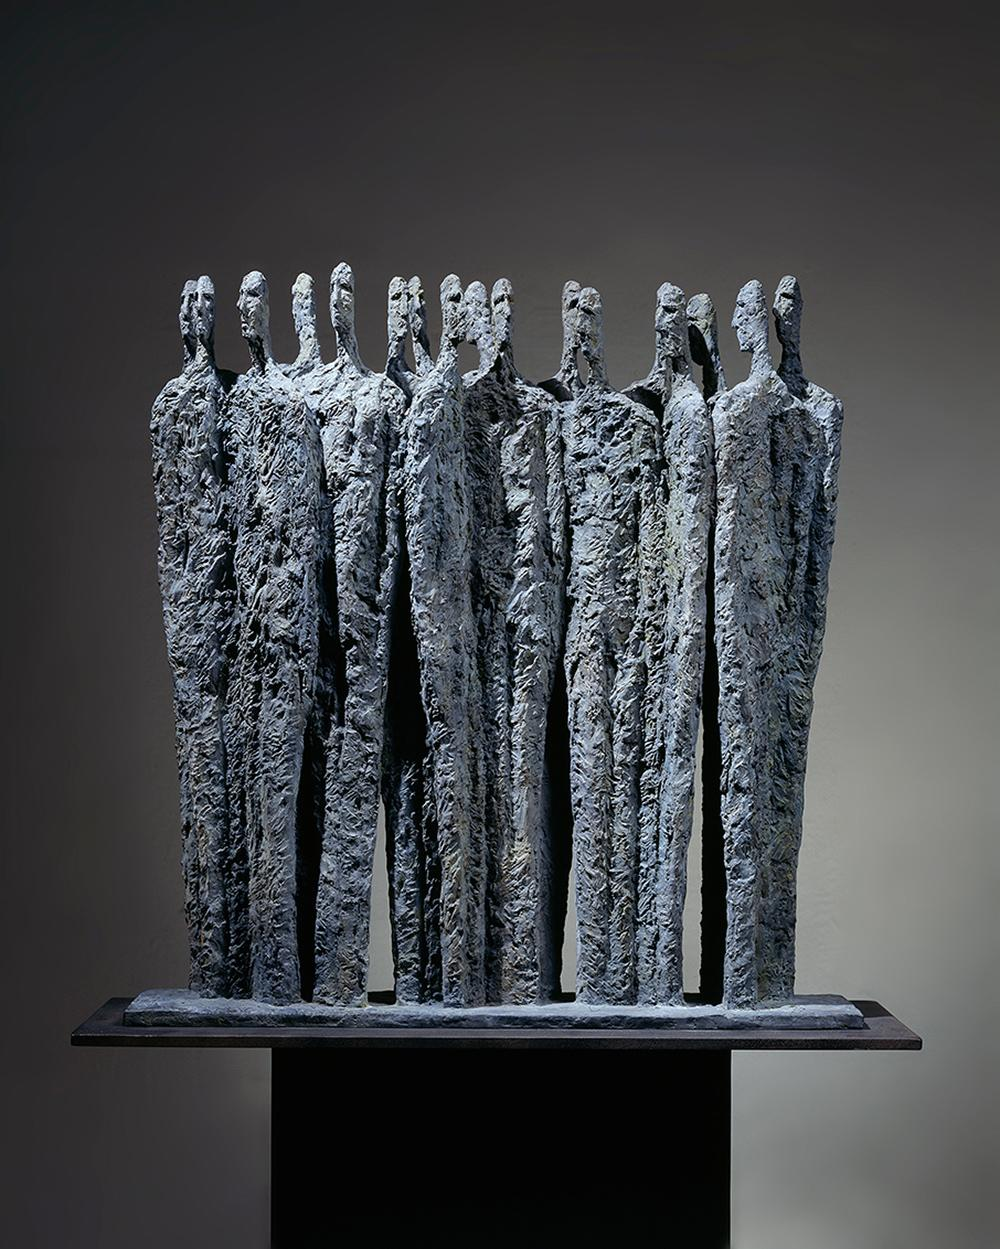 The Meeting by Martine Demal - bronze sculpture, group of human figures